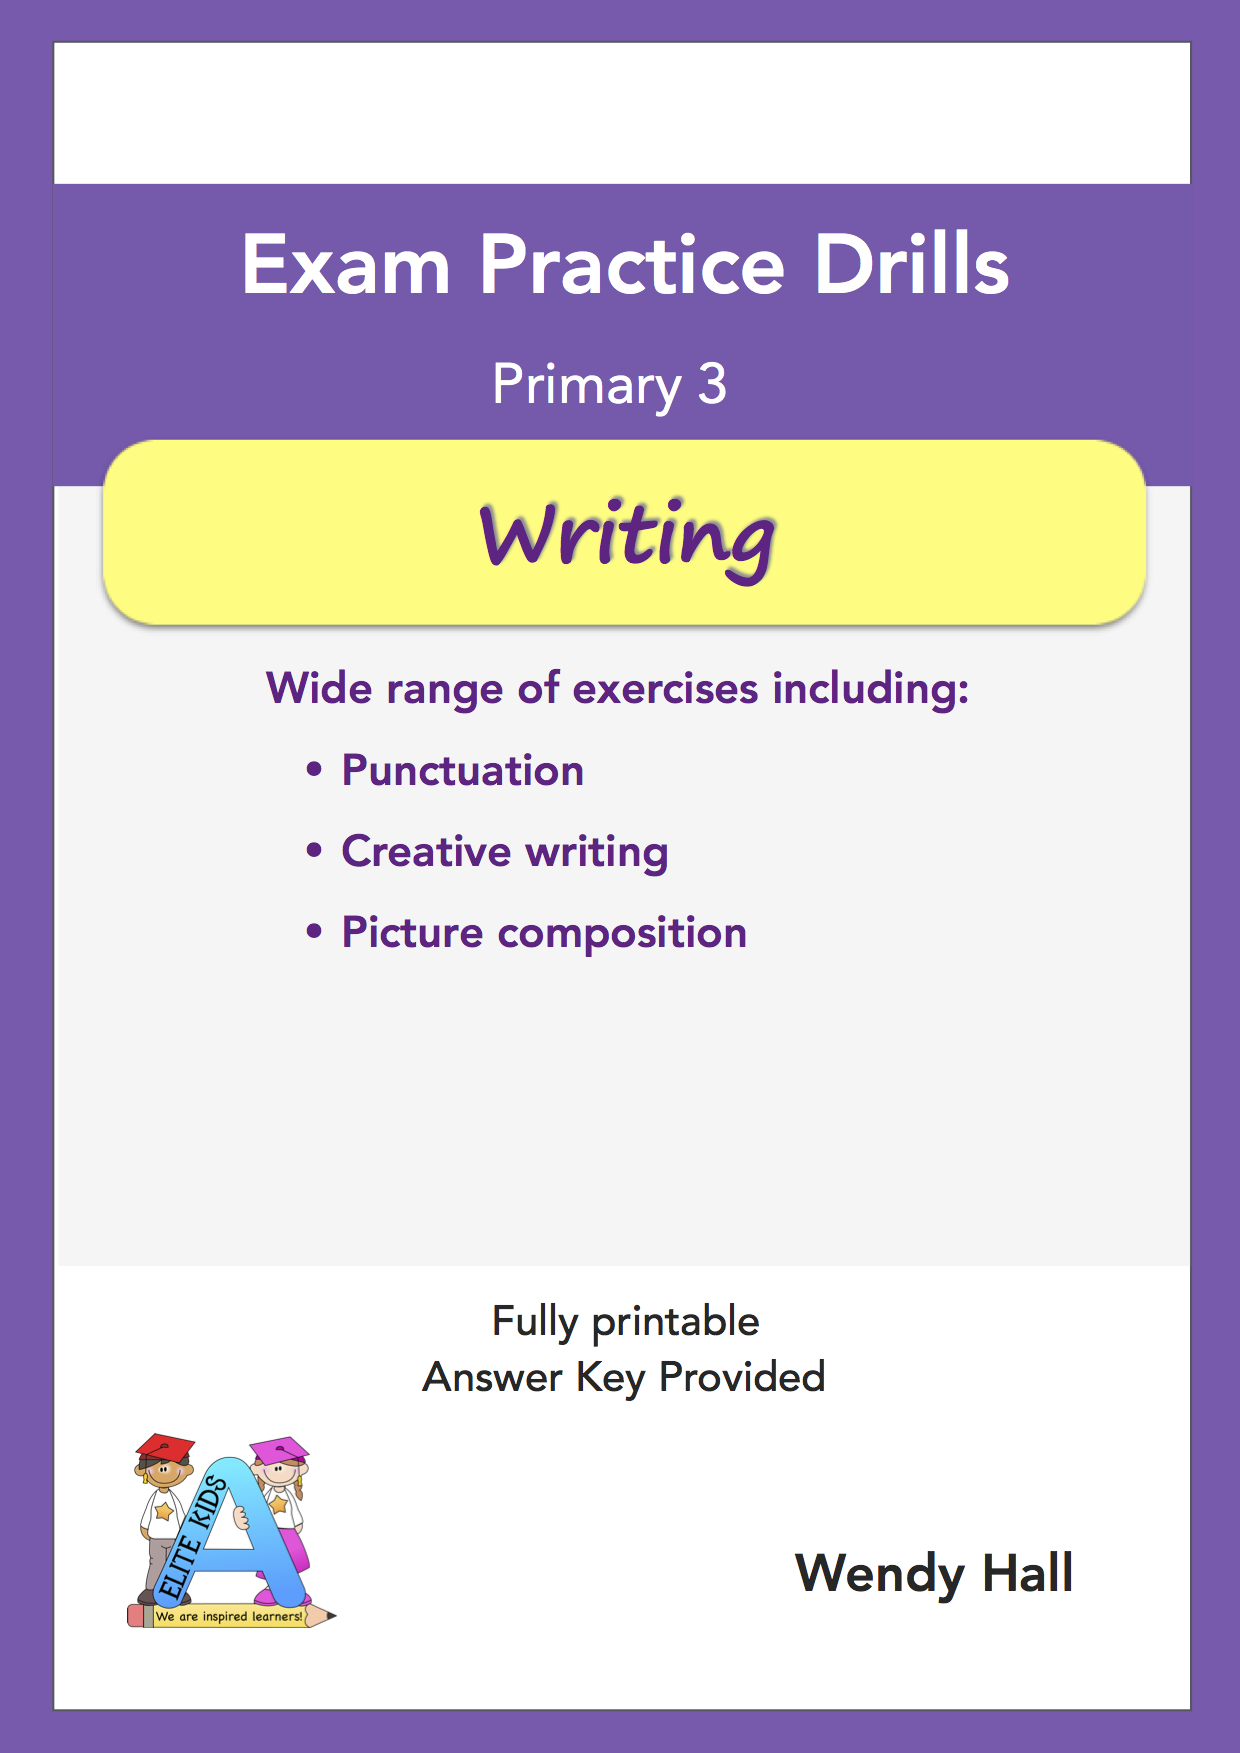 Elite Kids | Exam Practice Drills - Writing - Primary 3